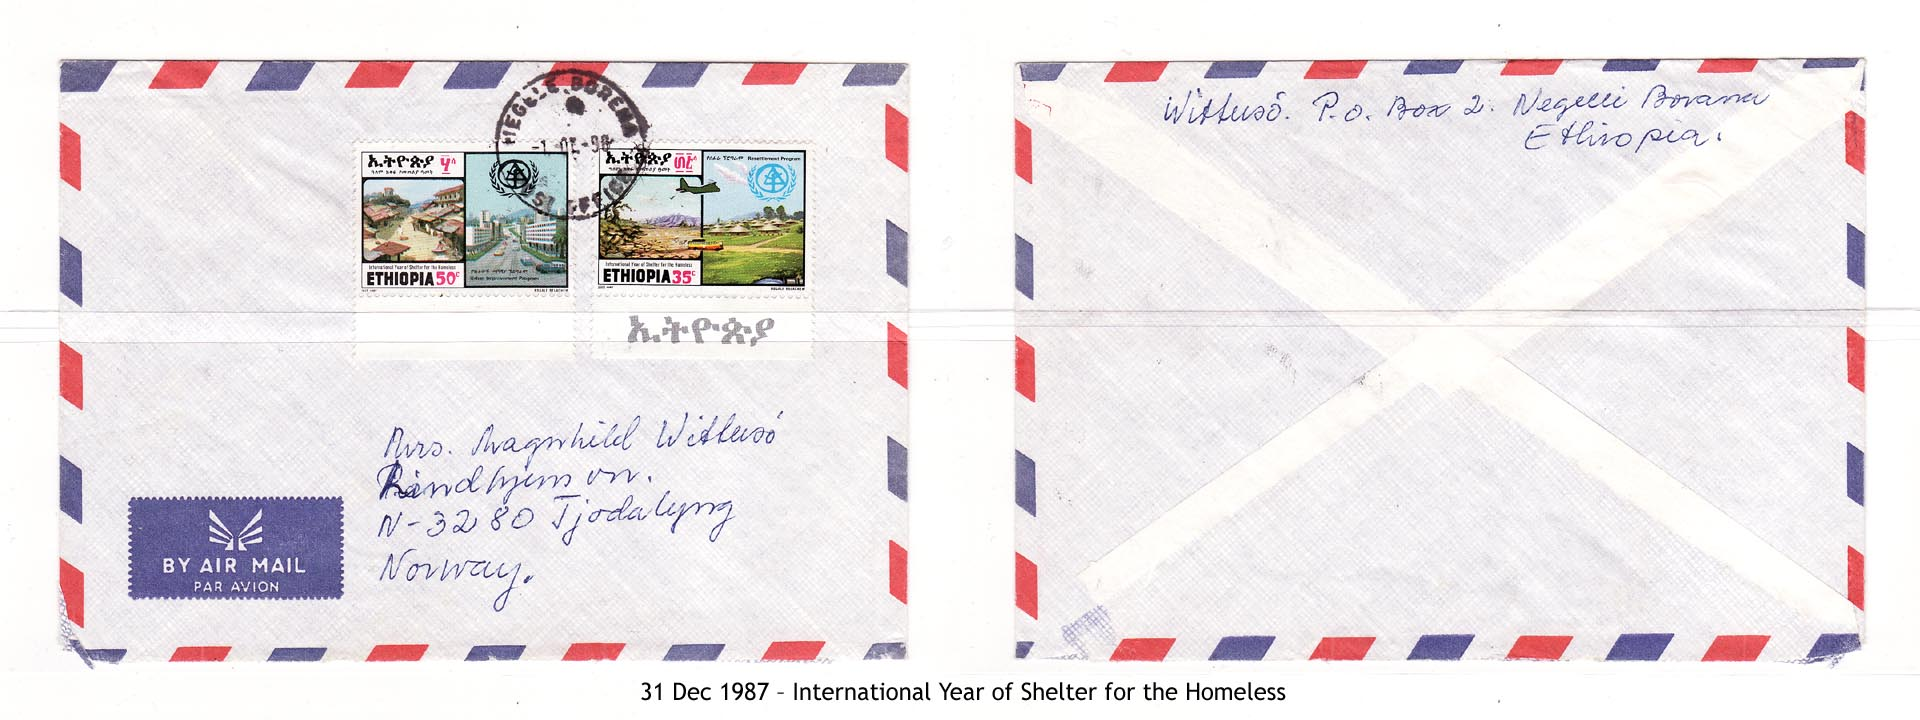 19871231 – International Year of Shelter for the Homeless